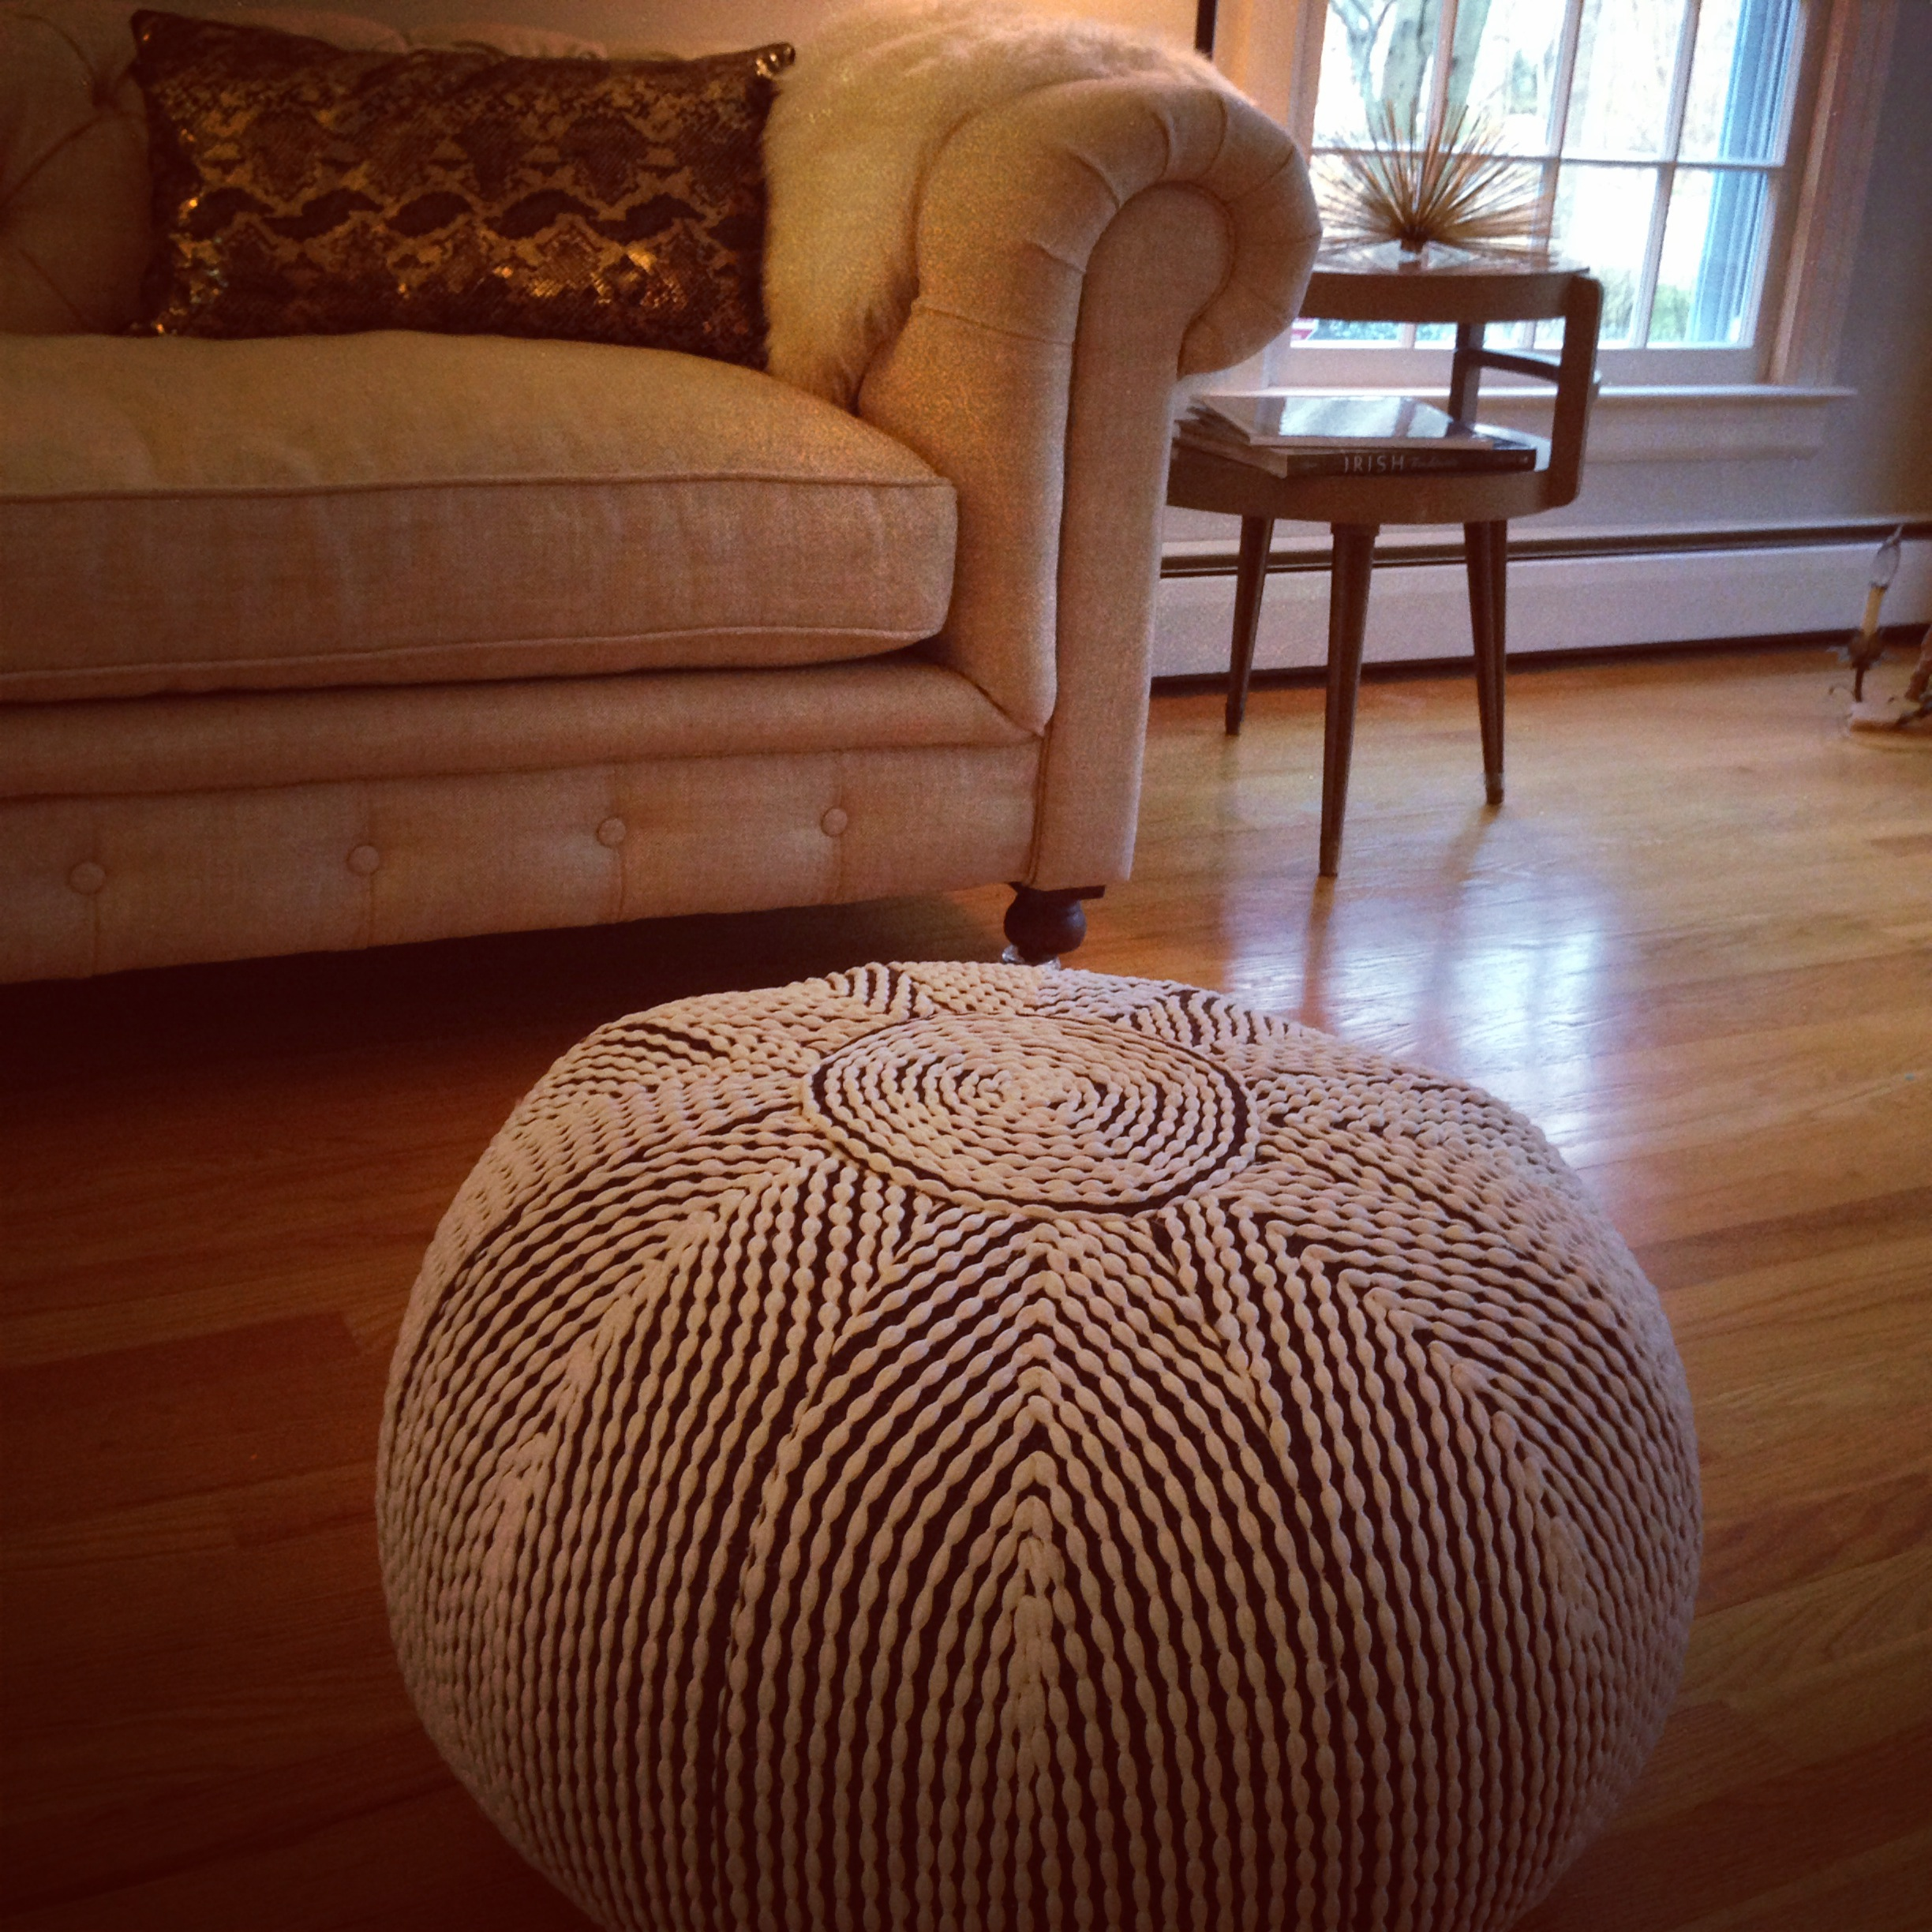 thank you living i clearance pillow responded on from pillows goods like home well pouf big are poufs